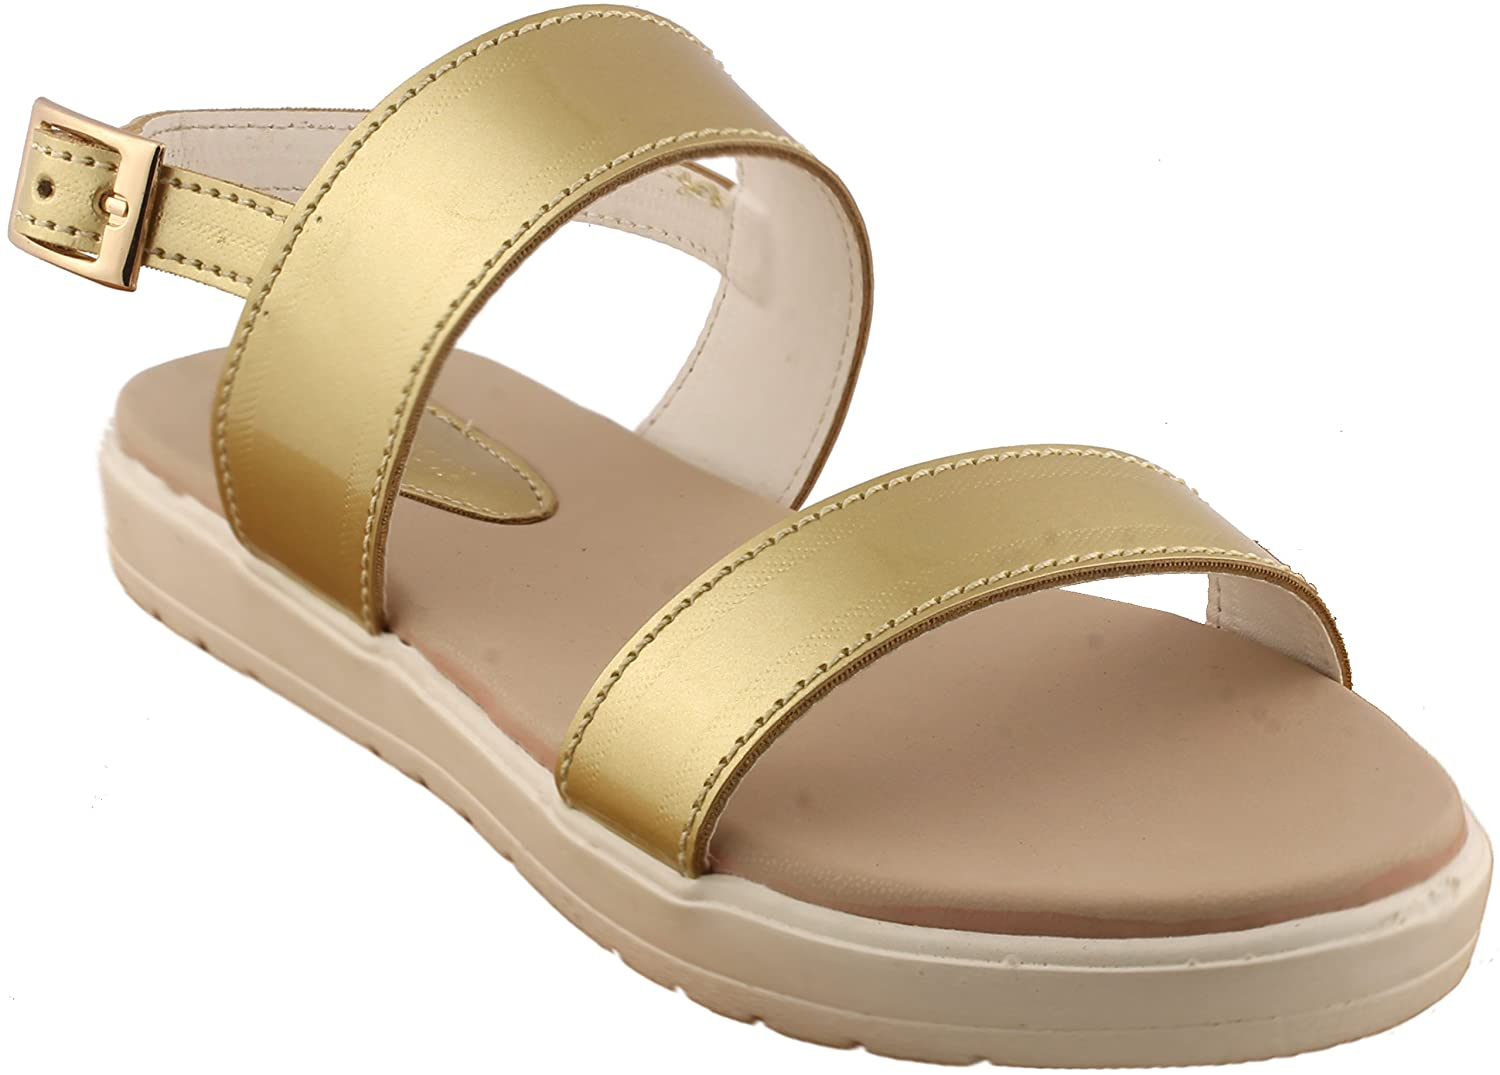 cf9350bec86 Gold flats double straps white sole ladies sandal beige sandal jpg  1500x1075 Ladies gold flats